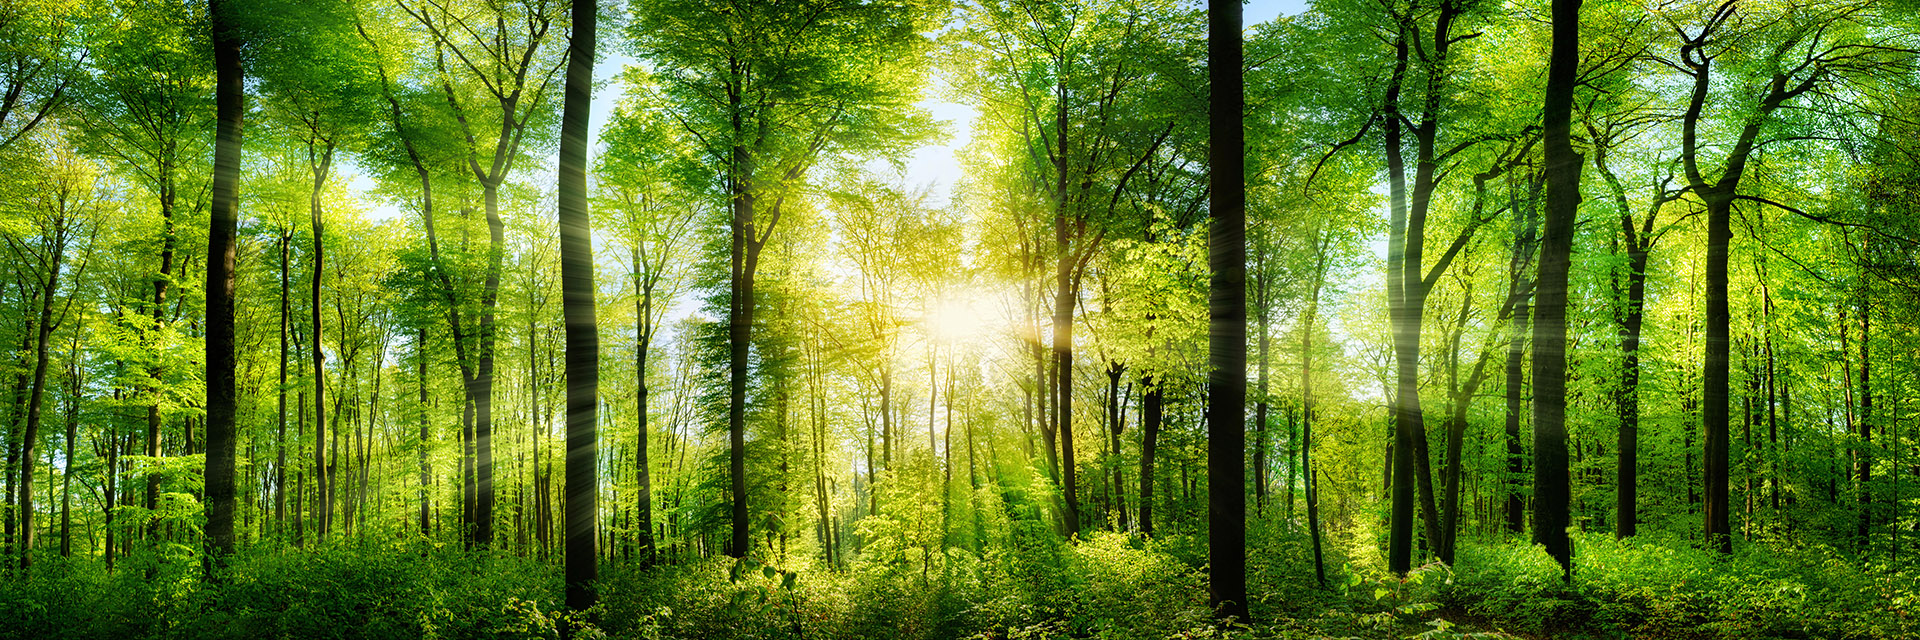 panoramic spring sunset green forest